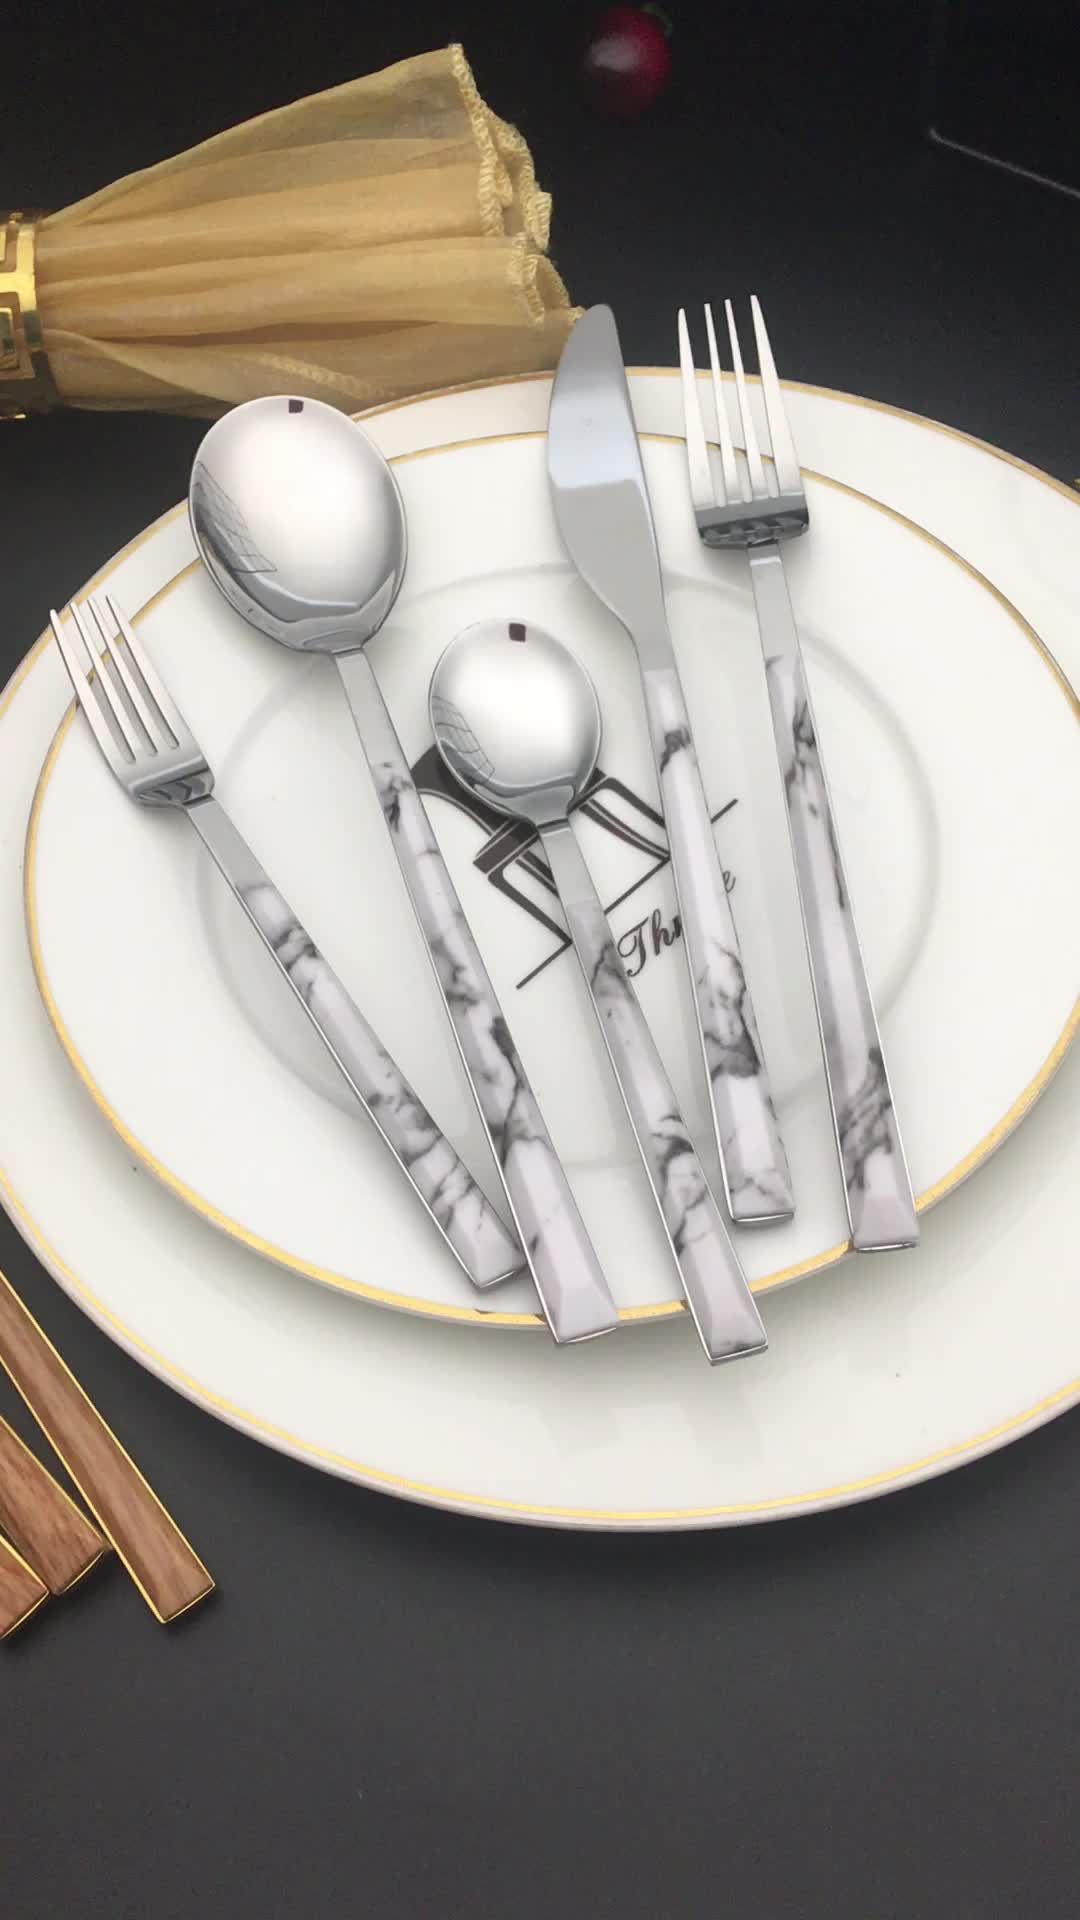 amazon top seller 2019 dinner set dinnerware sets dining table sets stainless steel tableware with wooden handle